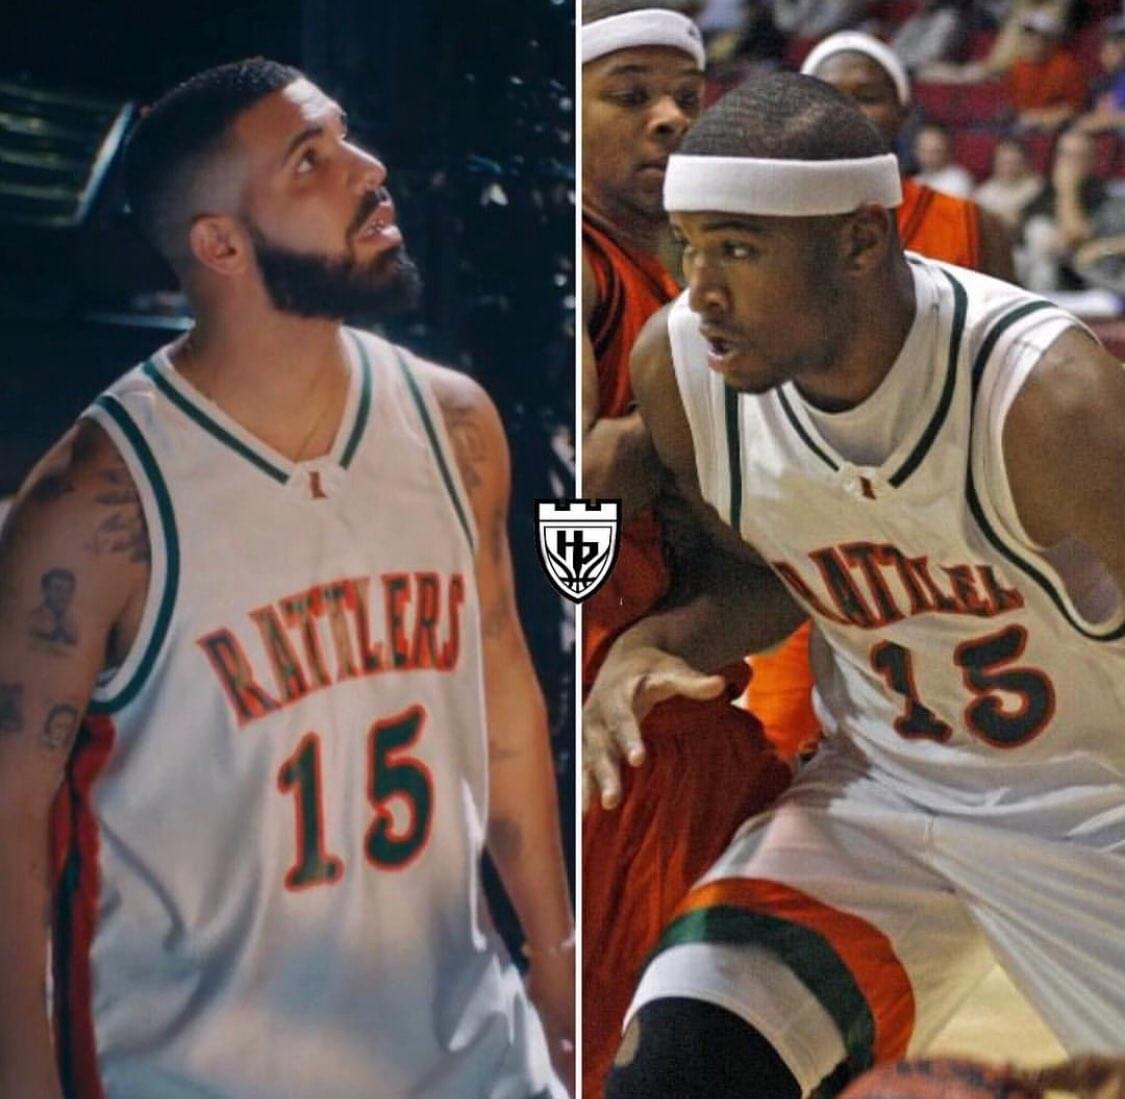 DRAKE ROCKS HIGH SCHOOL JERSEY IN NEW VIDEO!